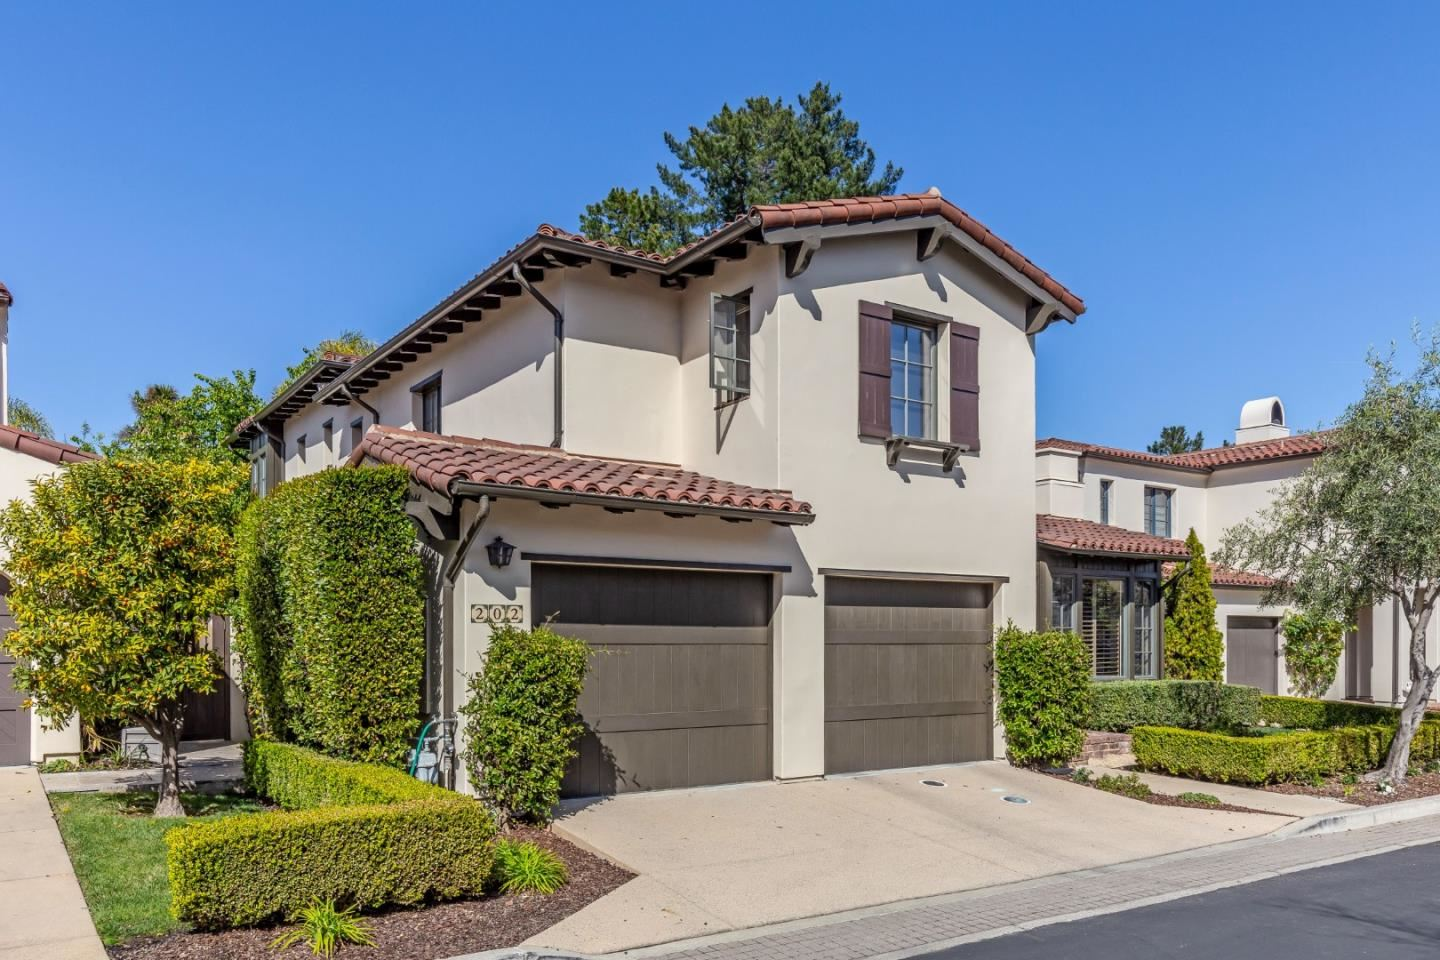 Photo for 202 Bersano LN, LOS GATOS, CA 95030 (MLS # ML81833091)